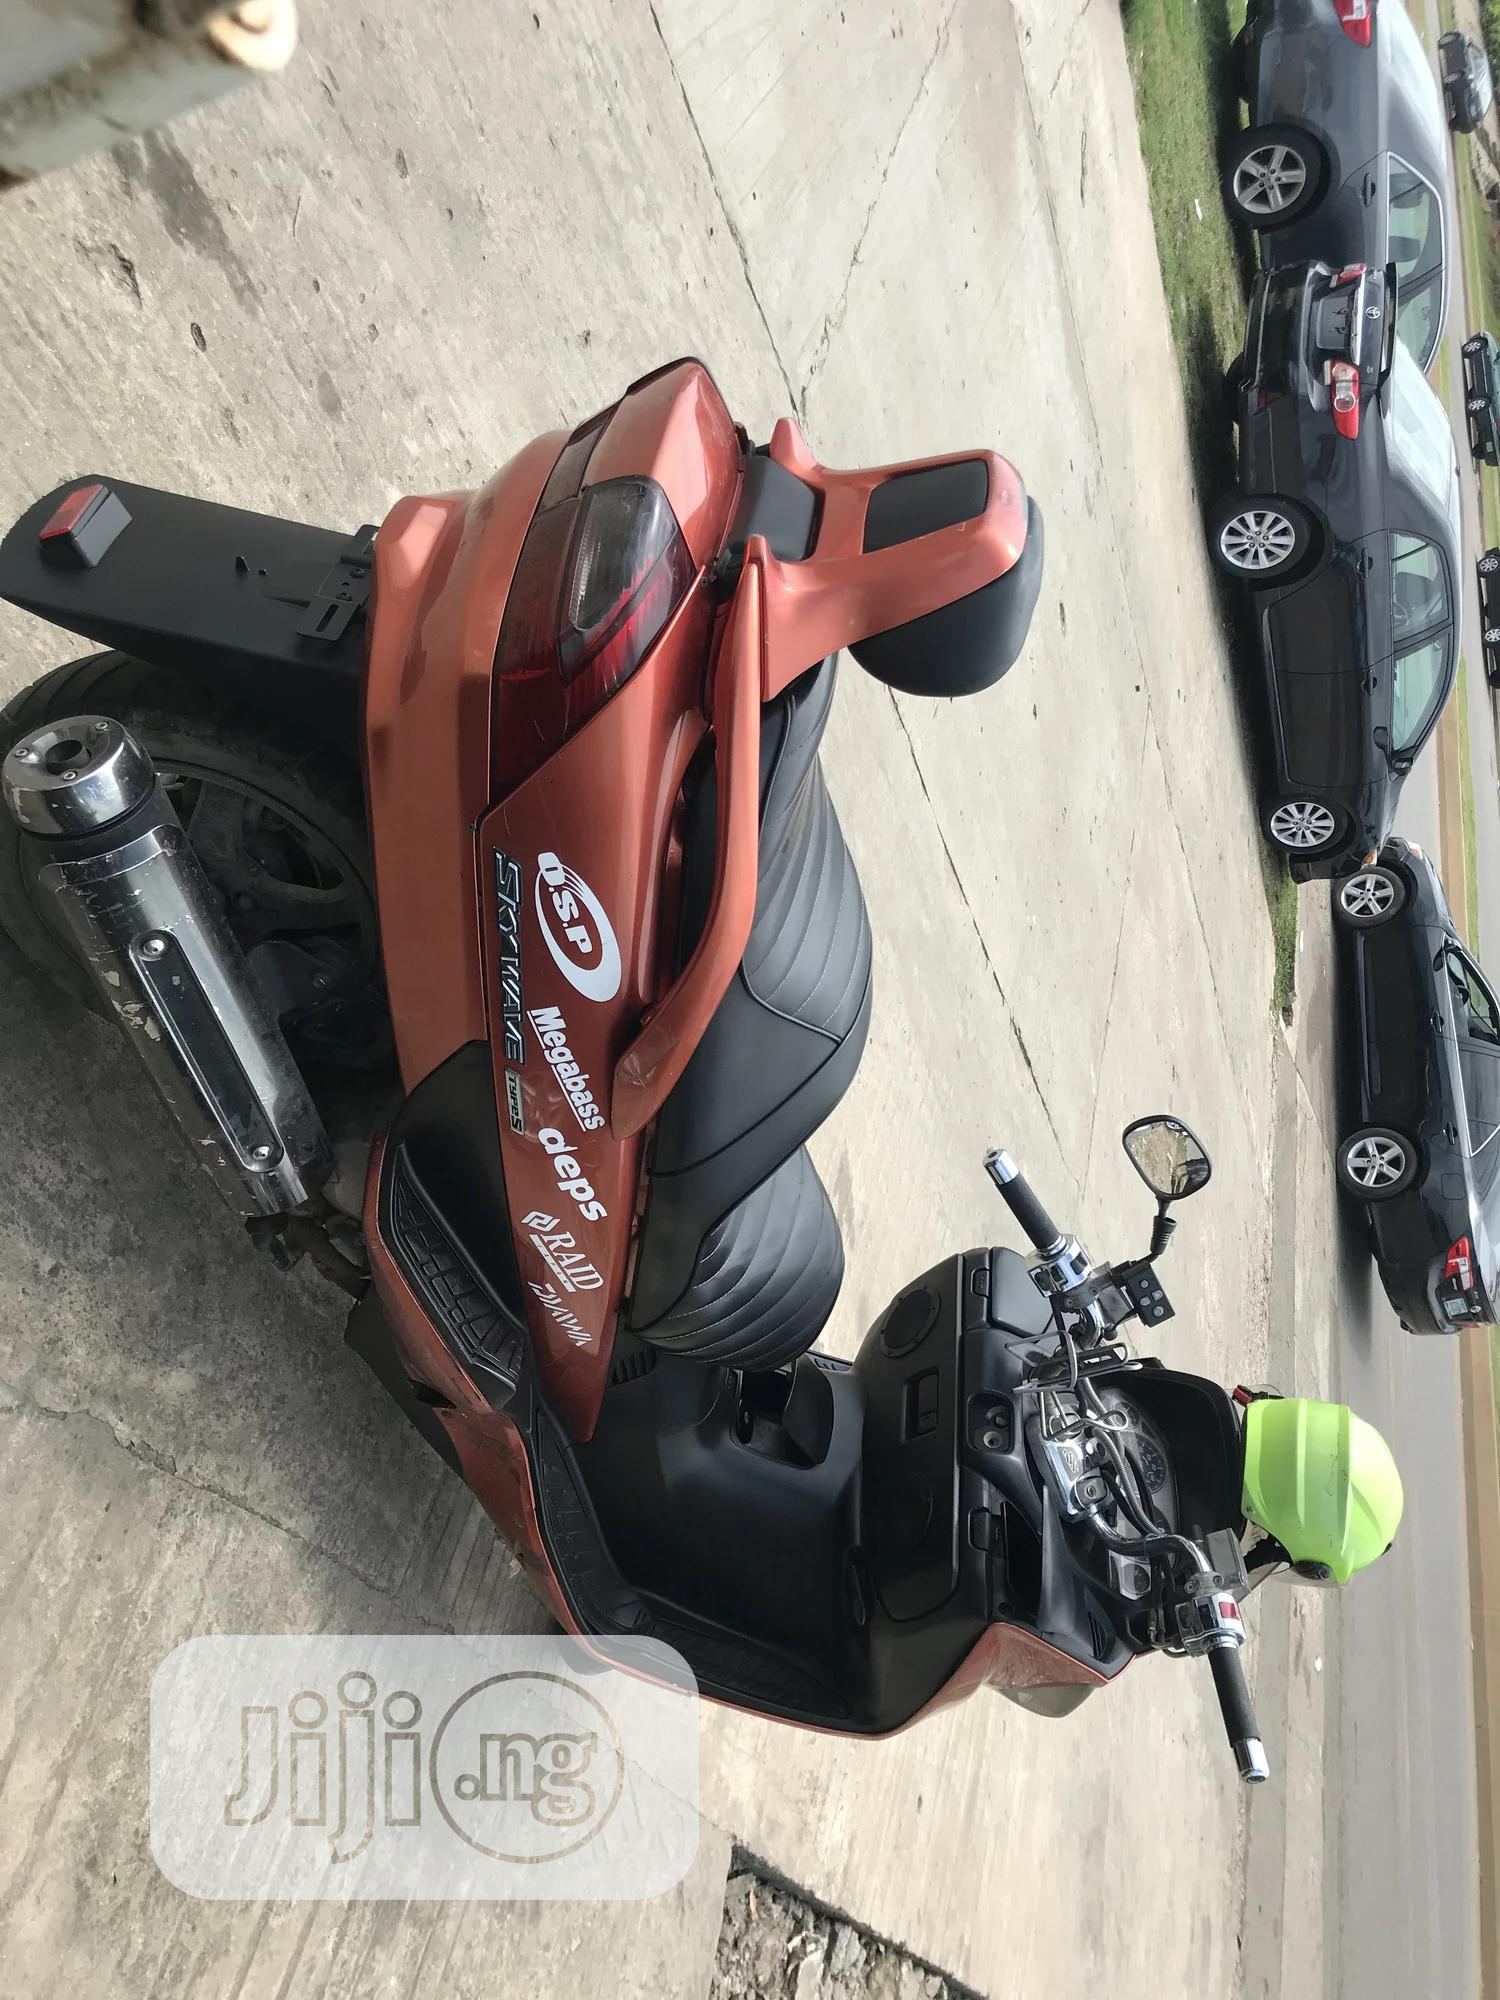 Suzuki Other 2018 Other | Motorcycles & Scooters for sale in Wuye, Abuja (FCT) State, Nigeria